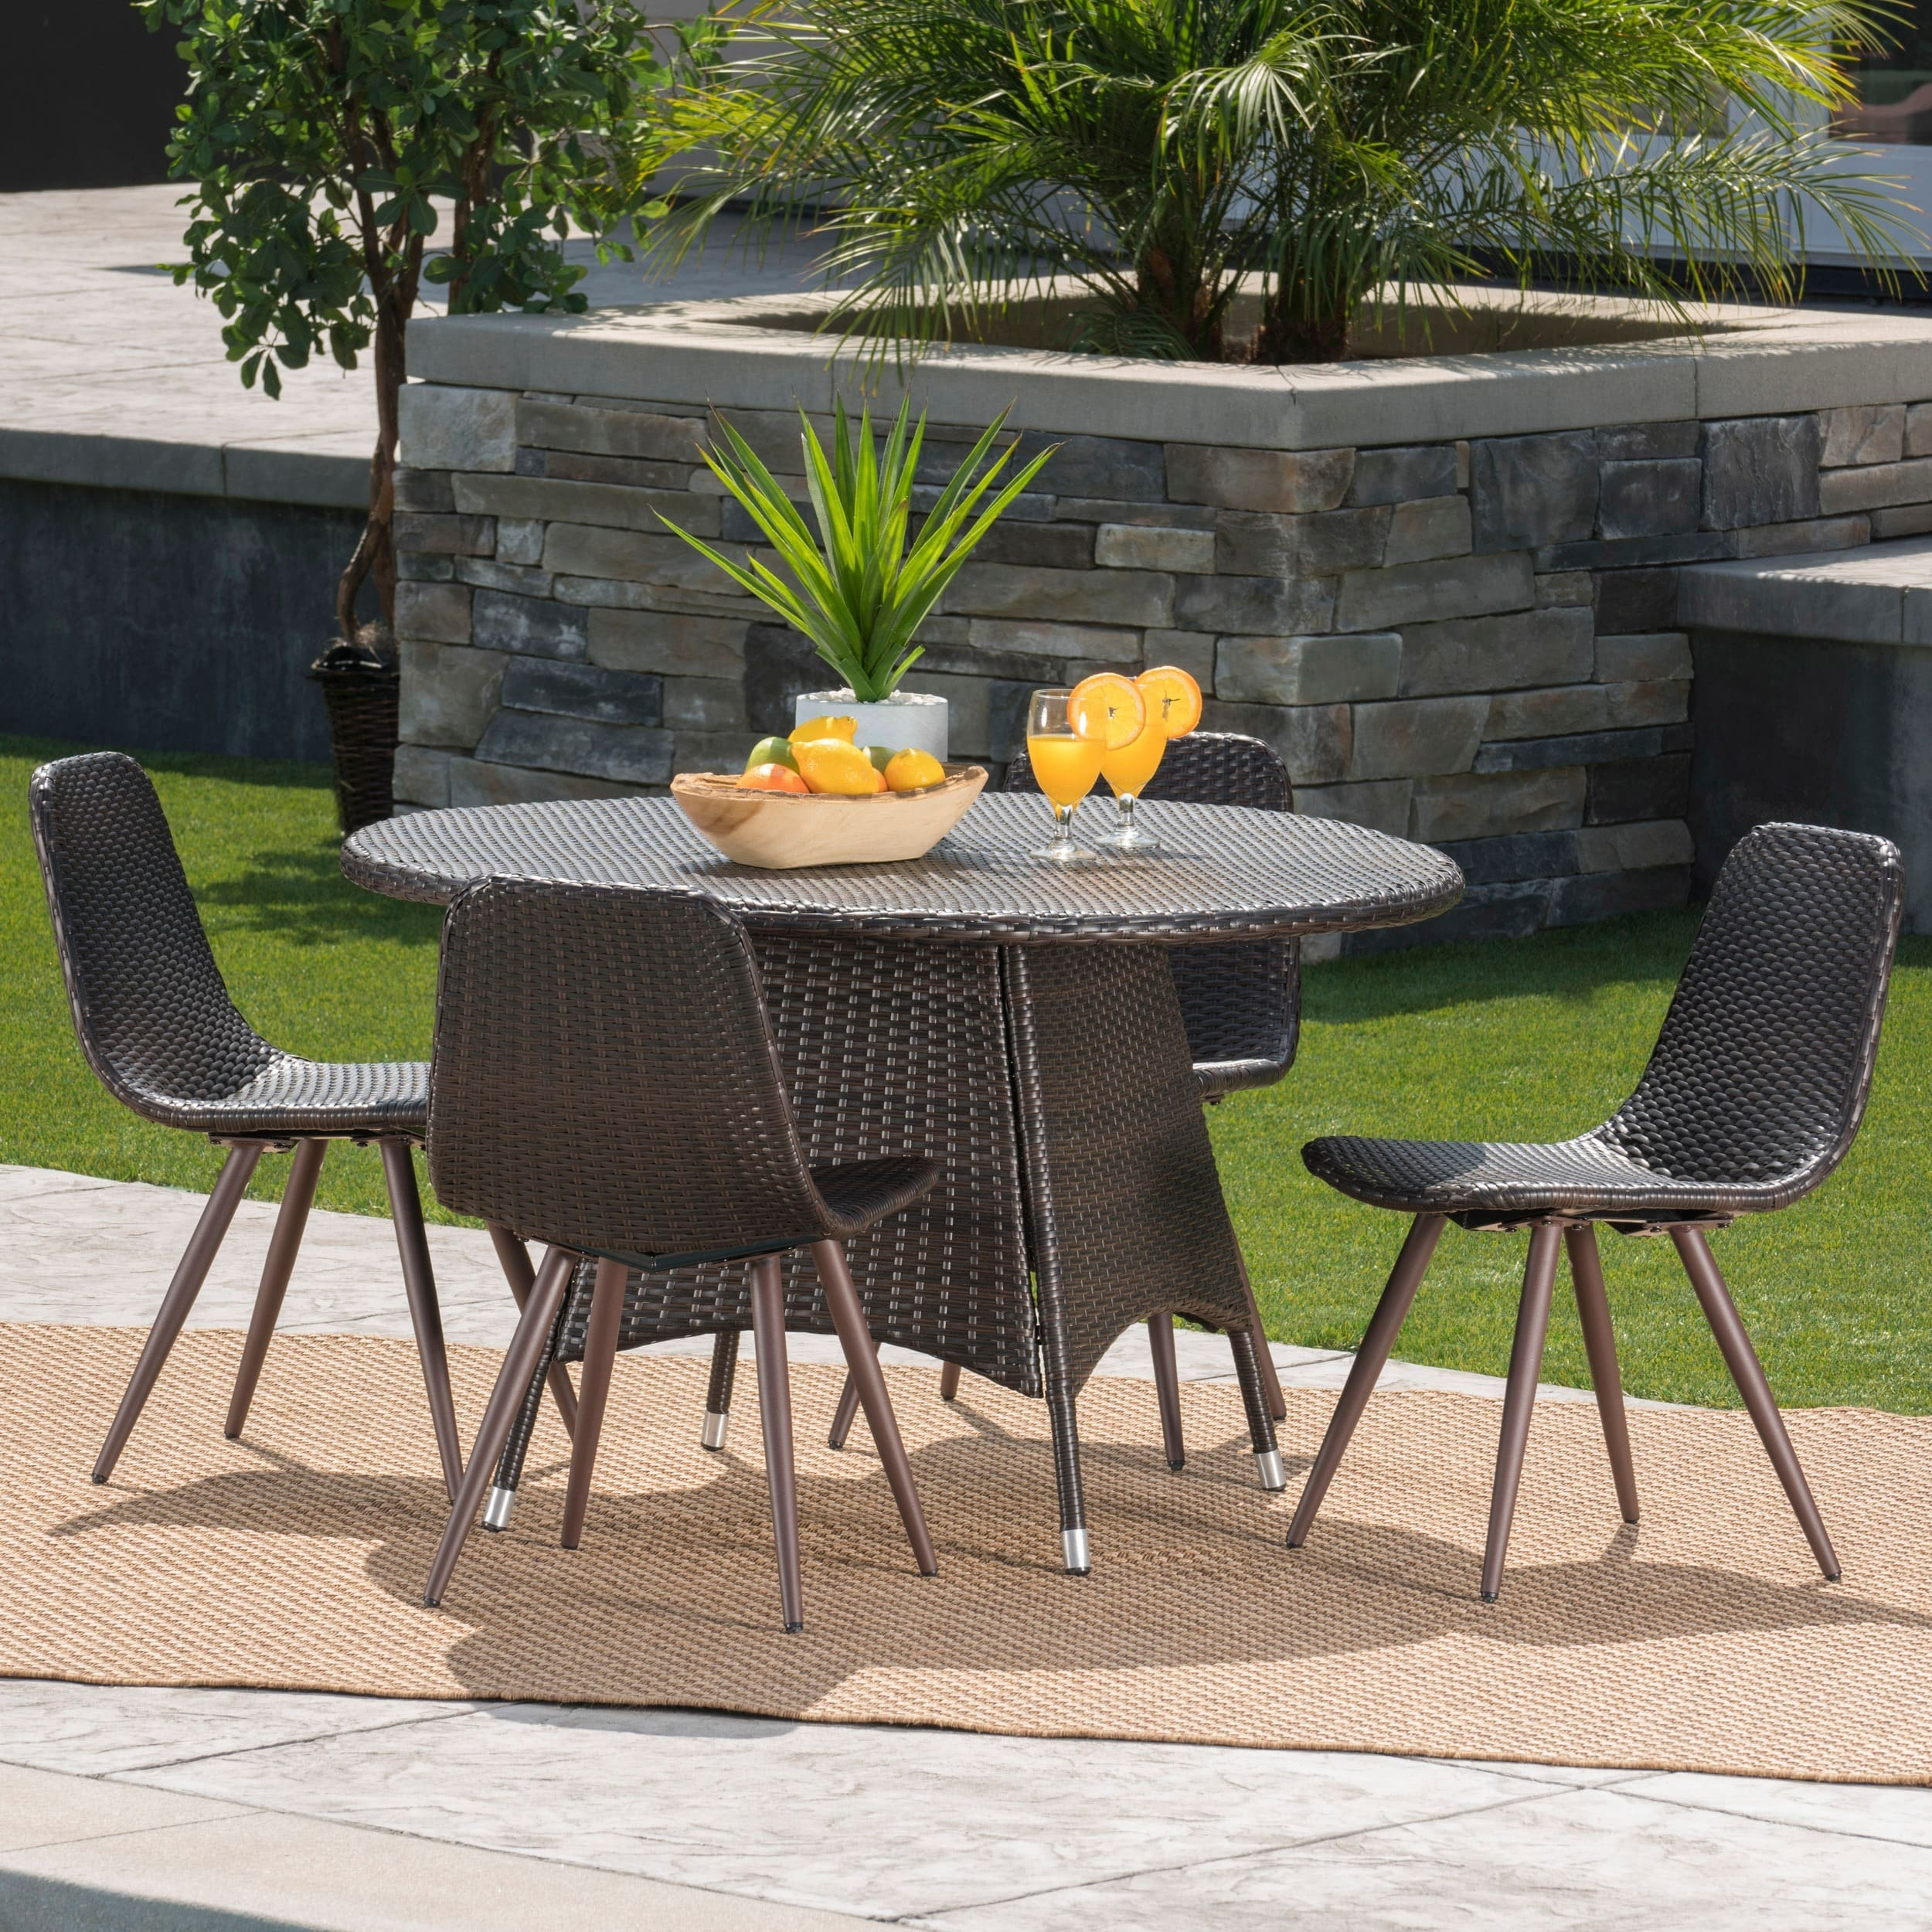 Christopher Knight Home Hugo Outdoor 5-Piece Round Wicker Dining Set with Umbrella Hole by